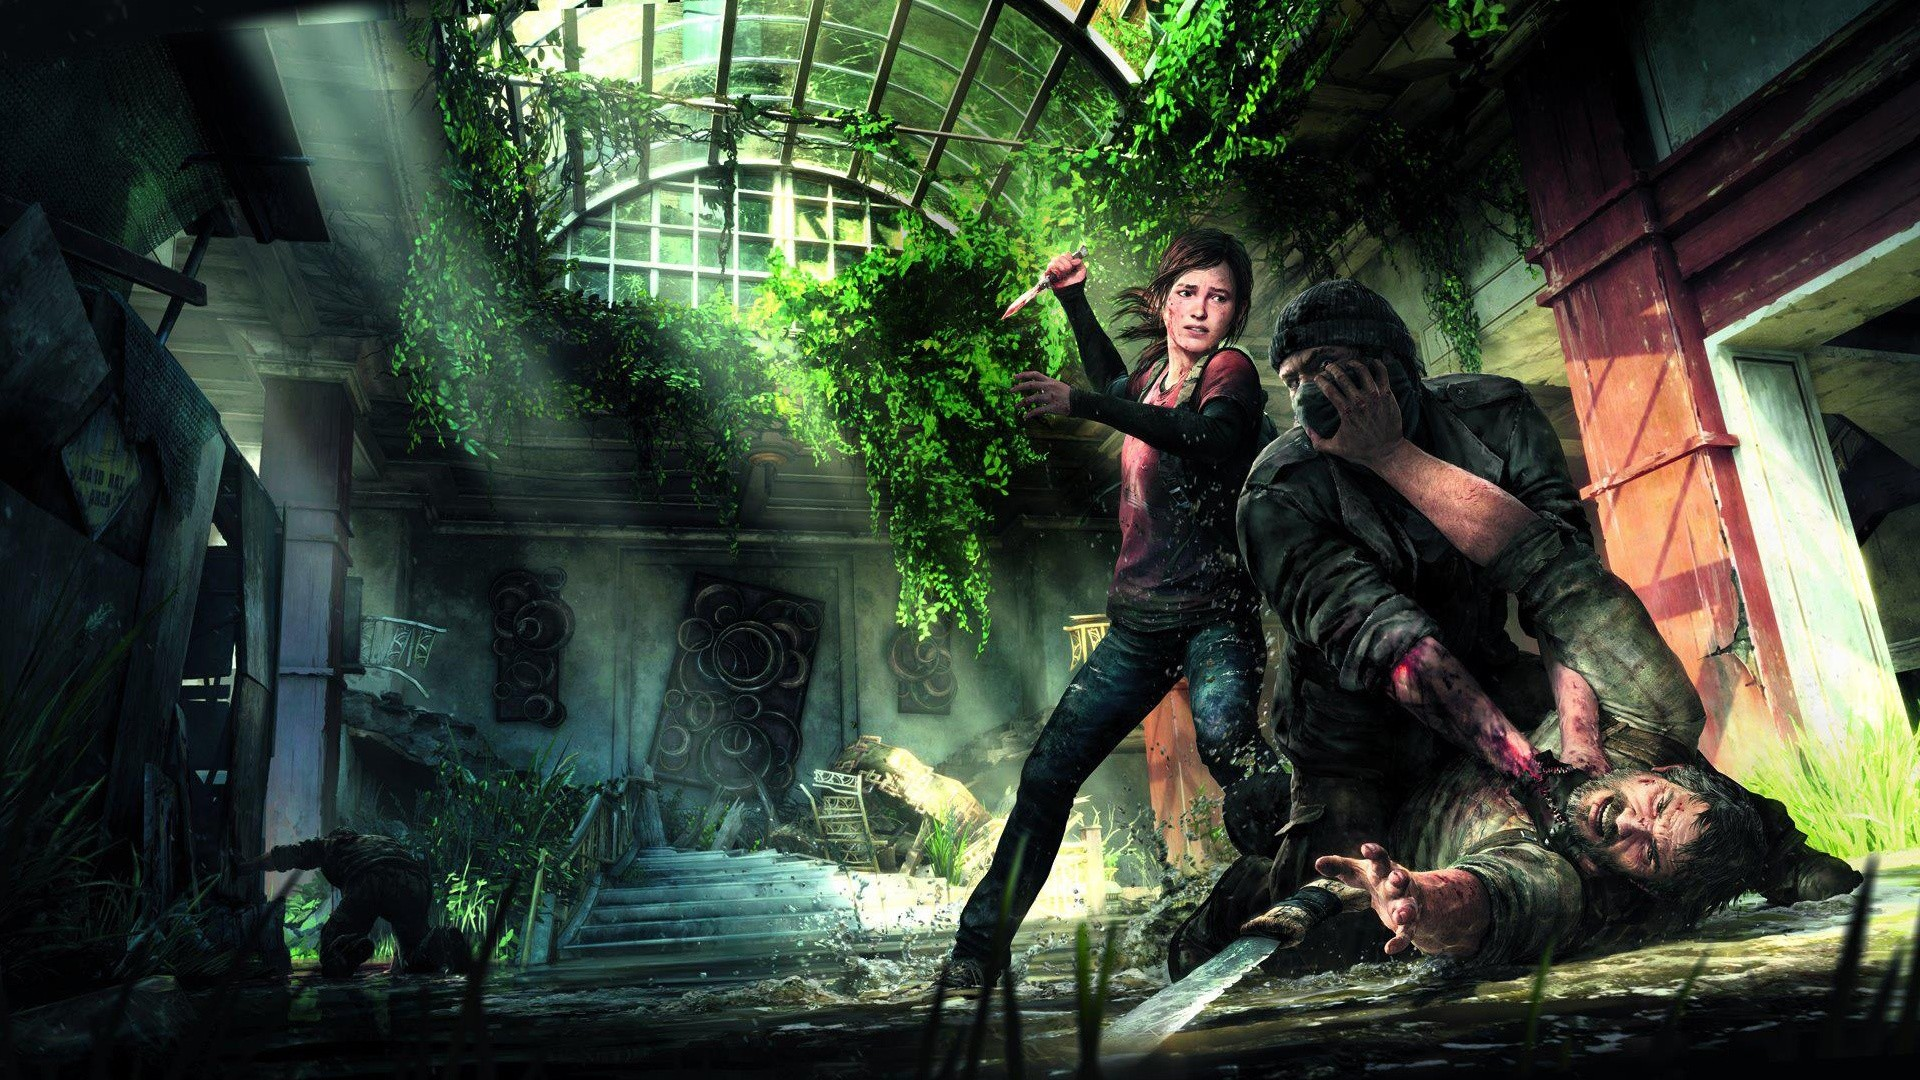 the last of us ps3 game wallpaper